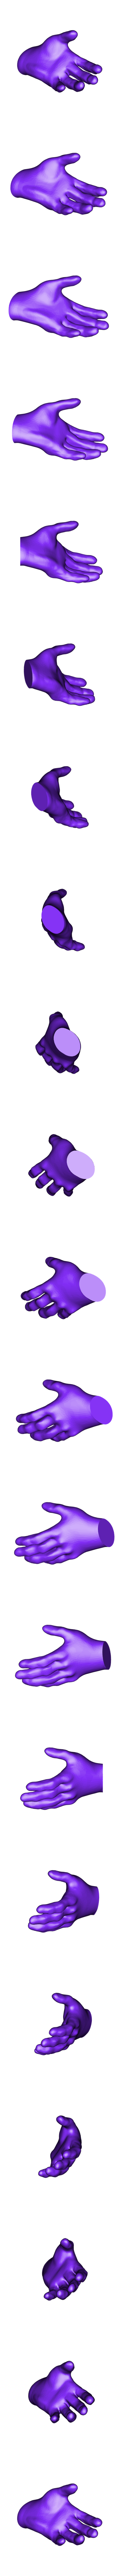 SG_FaceP_Hand_1_White.stl Download free STL file Space Ghost - Facepalm • 3D printable model, mag-net